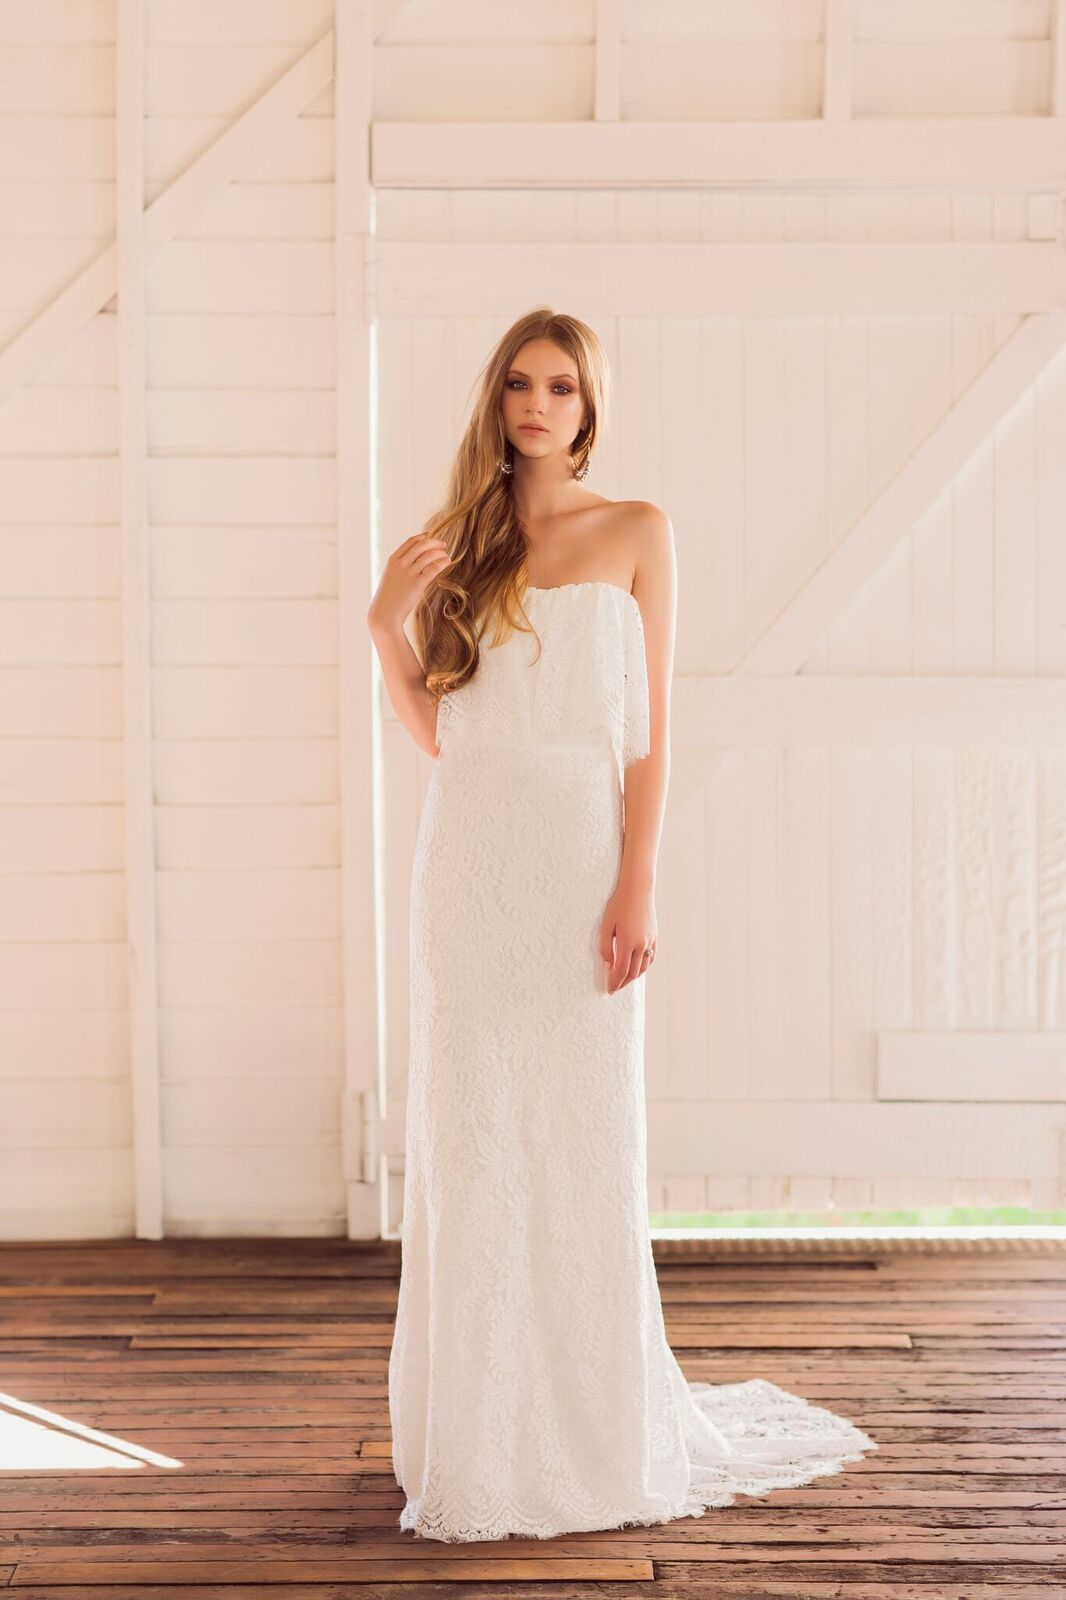 'Petra' -  f  lounce silk white lace bodice gown with slimline lace skirt with long train.